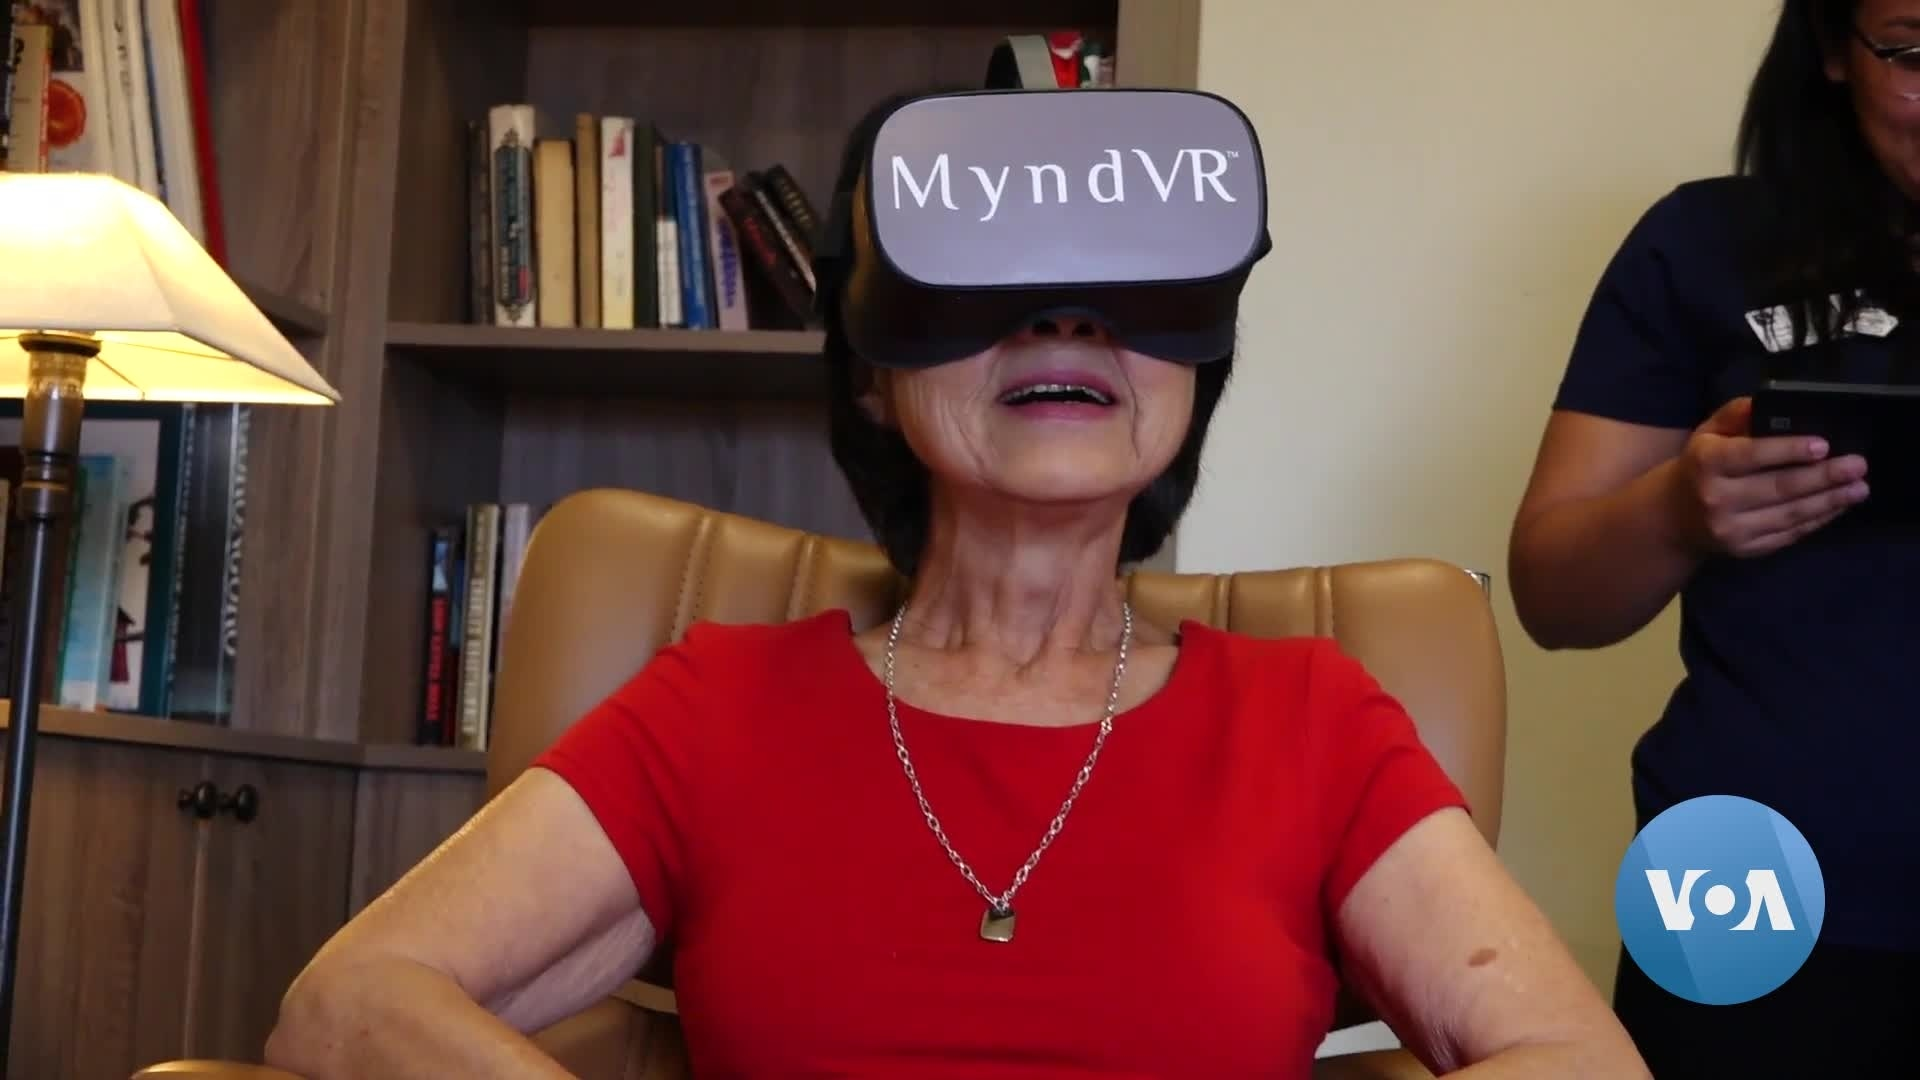 Seniors Use Virtual Reality to Fight Dementia, Social Isolation